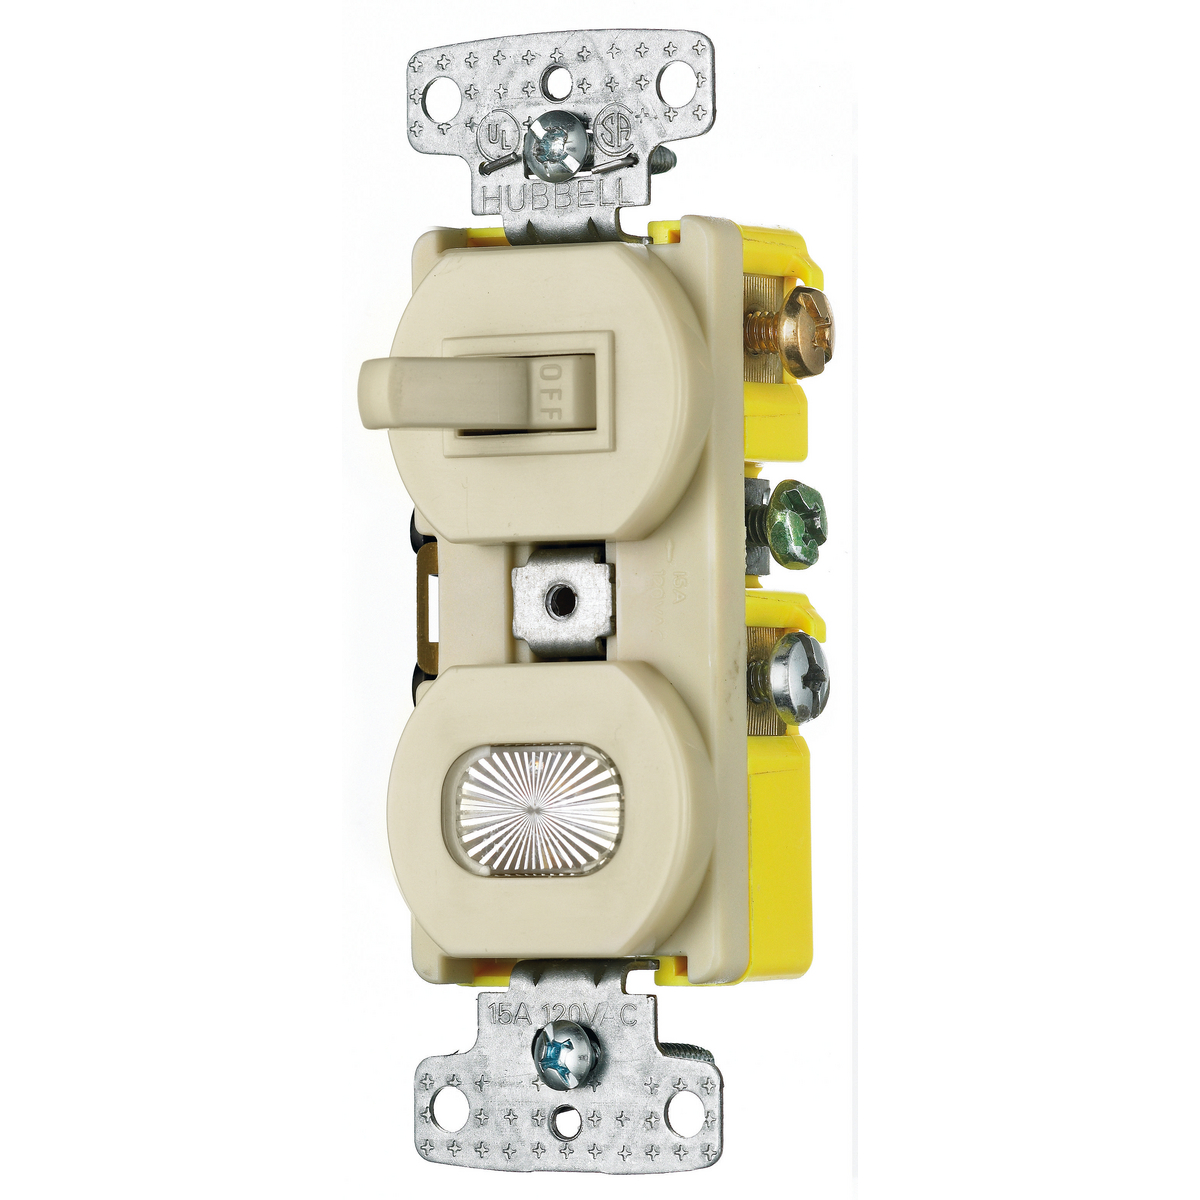 Hubbell RC309I 15 Amp 120 VAC 3-Way Ivory Combination Switch with Pilot Light